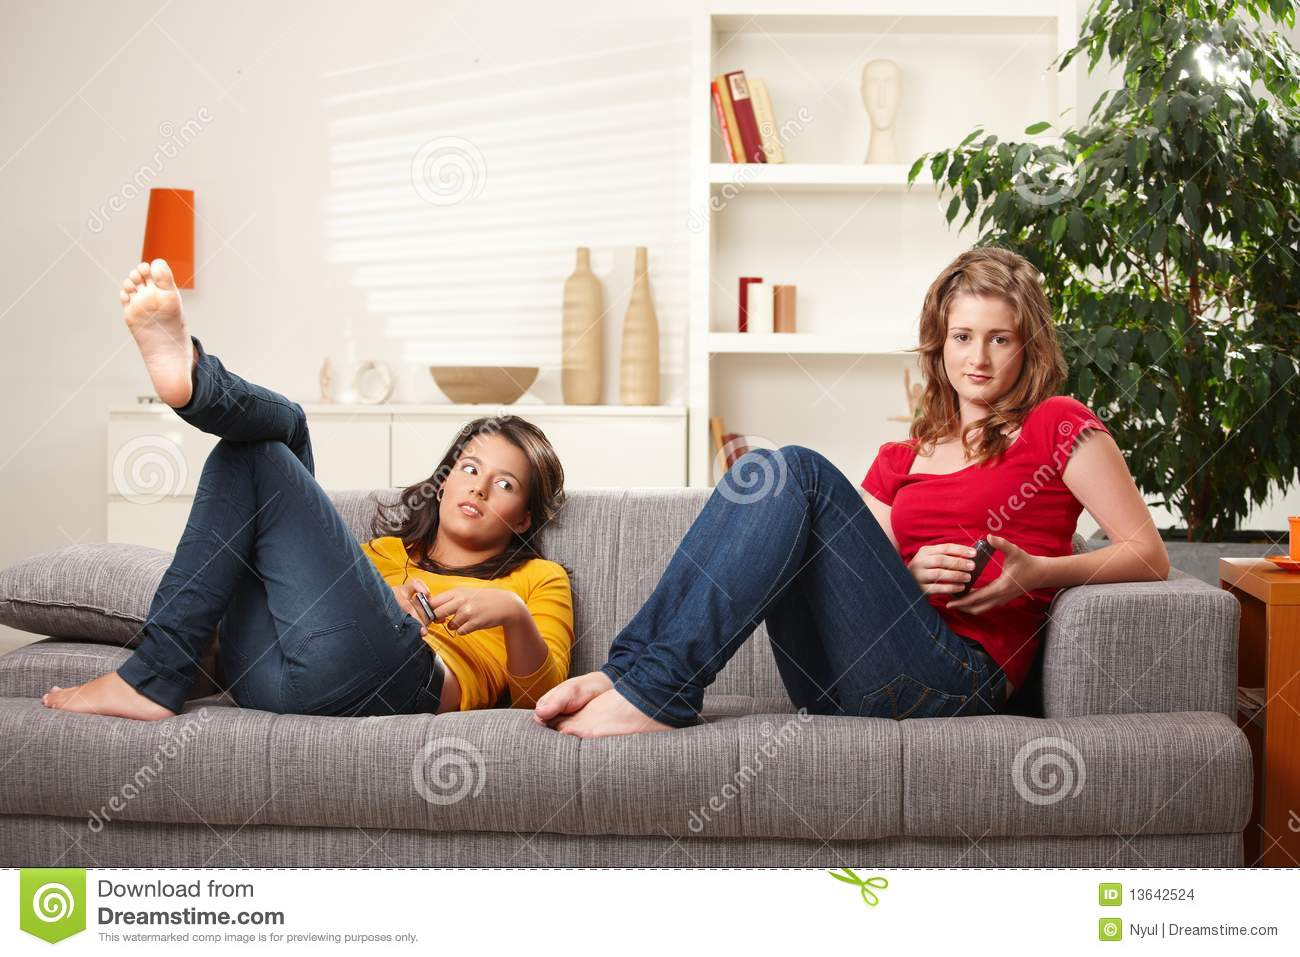 Teen Girls Relaxing On Sofa Stock Images - Image: 13642524